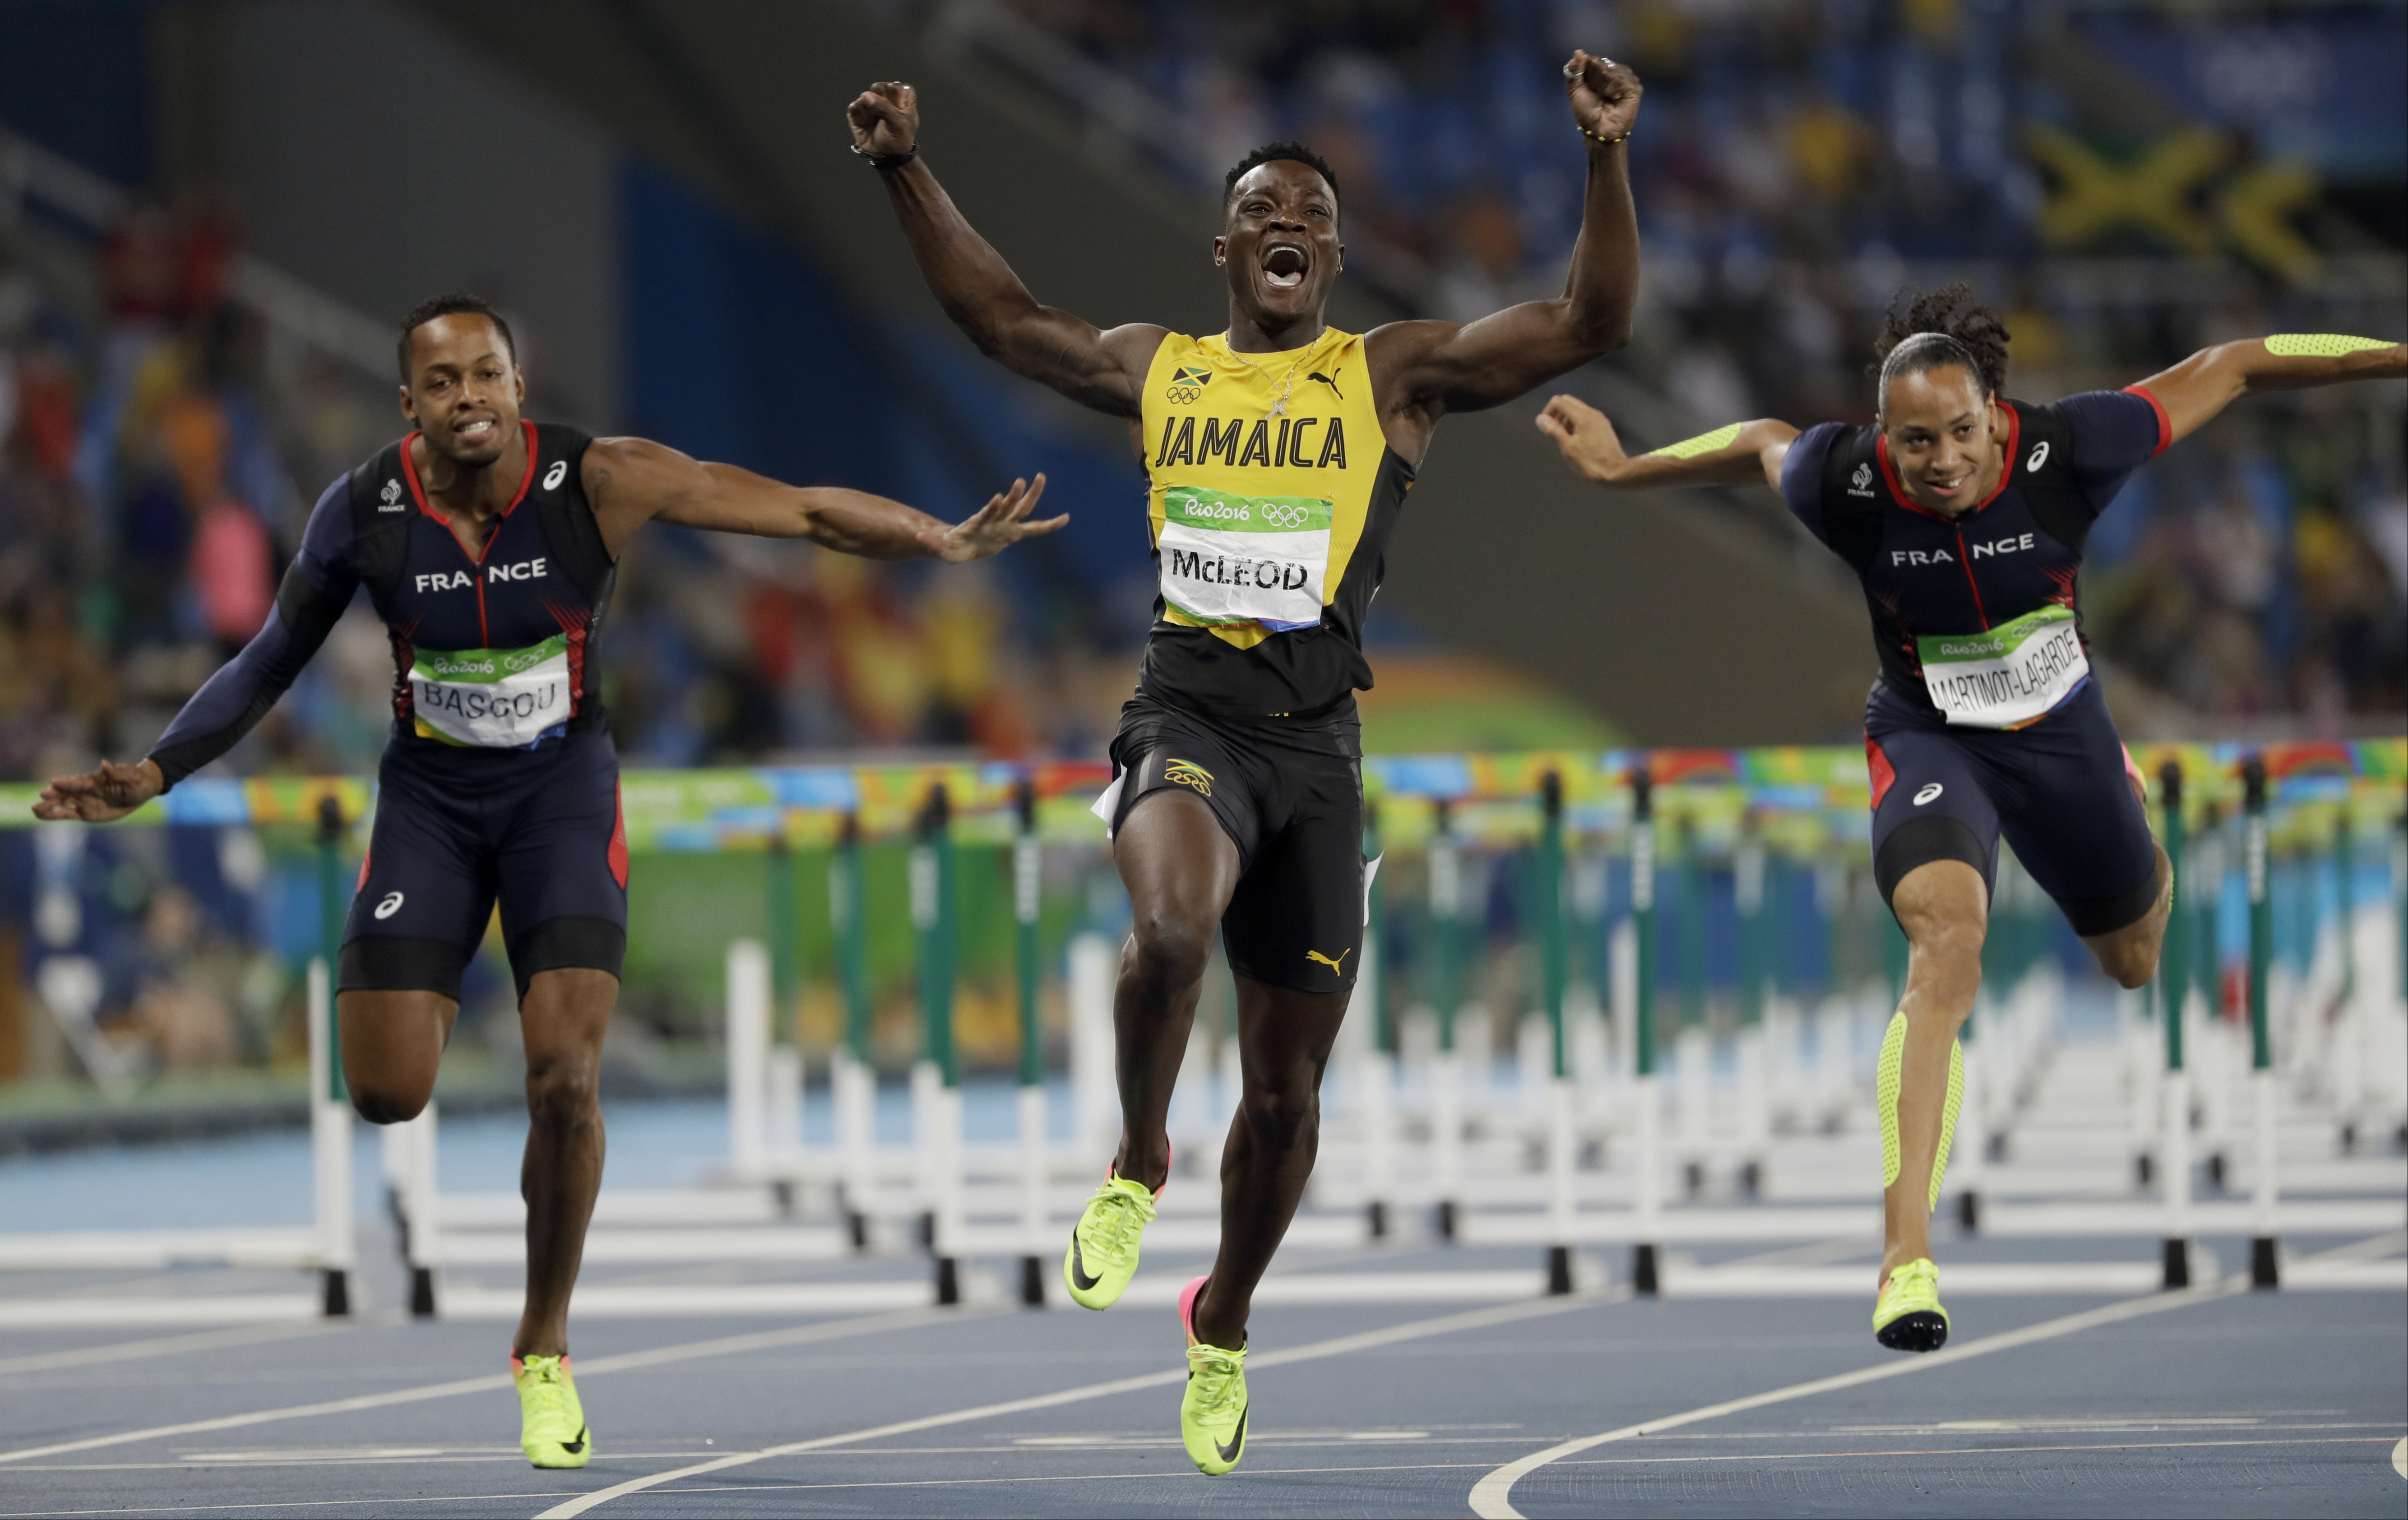 Jamaica's Omar Mcleod, center, wins the men's 110-meter hurdles final ahead of third placed France's Dimitri Bascou, left, and fourth placed France's Pascal Martinot-Lagarde during the athletics competitions of the 2016 Summer Olympics at the Olympic stad